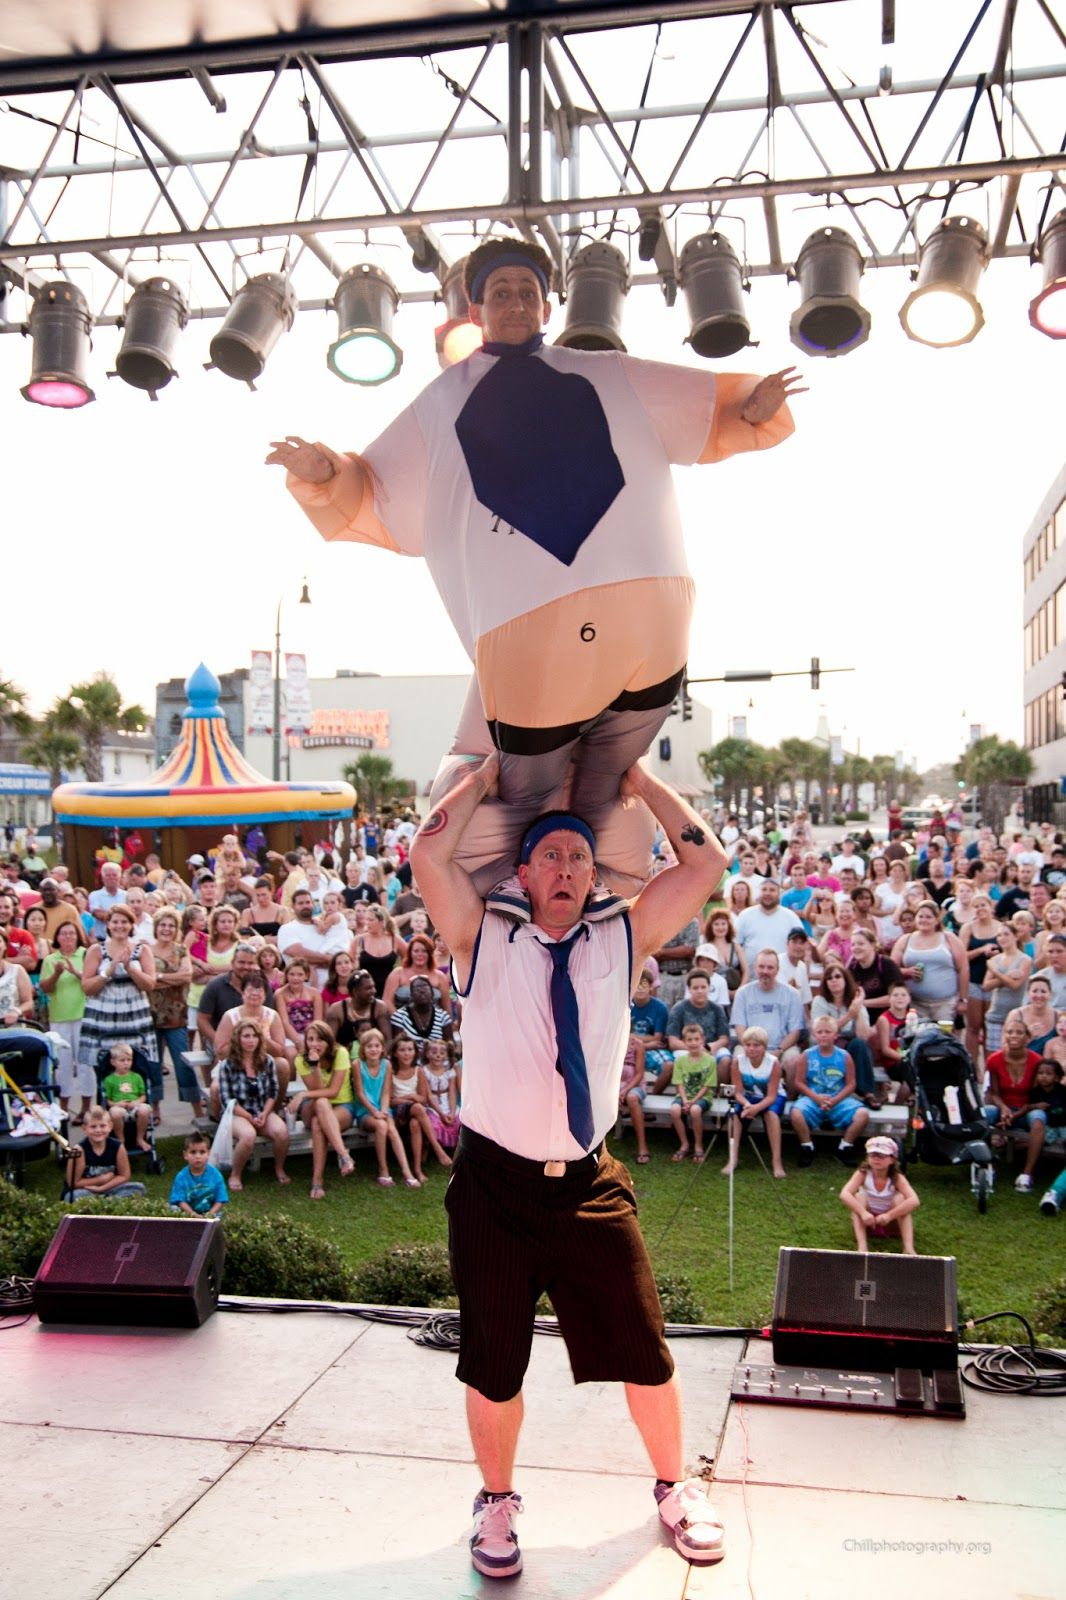 Hot Summer Nights Free Festival In Myrtle Beach Comedy Jugglers The Blue Tie Guys Rocking The Stage For Th Myrtle Beach Myrtle Beach South Carolina Kids Night